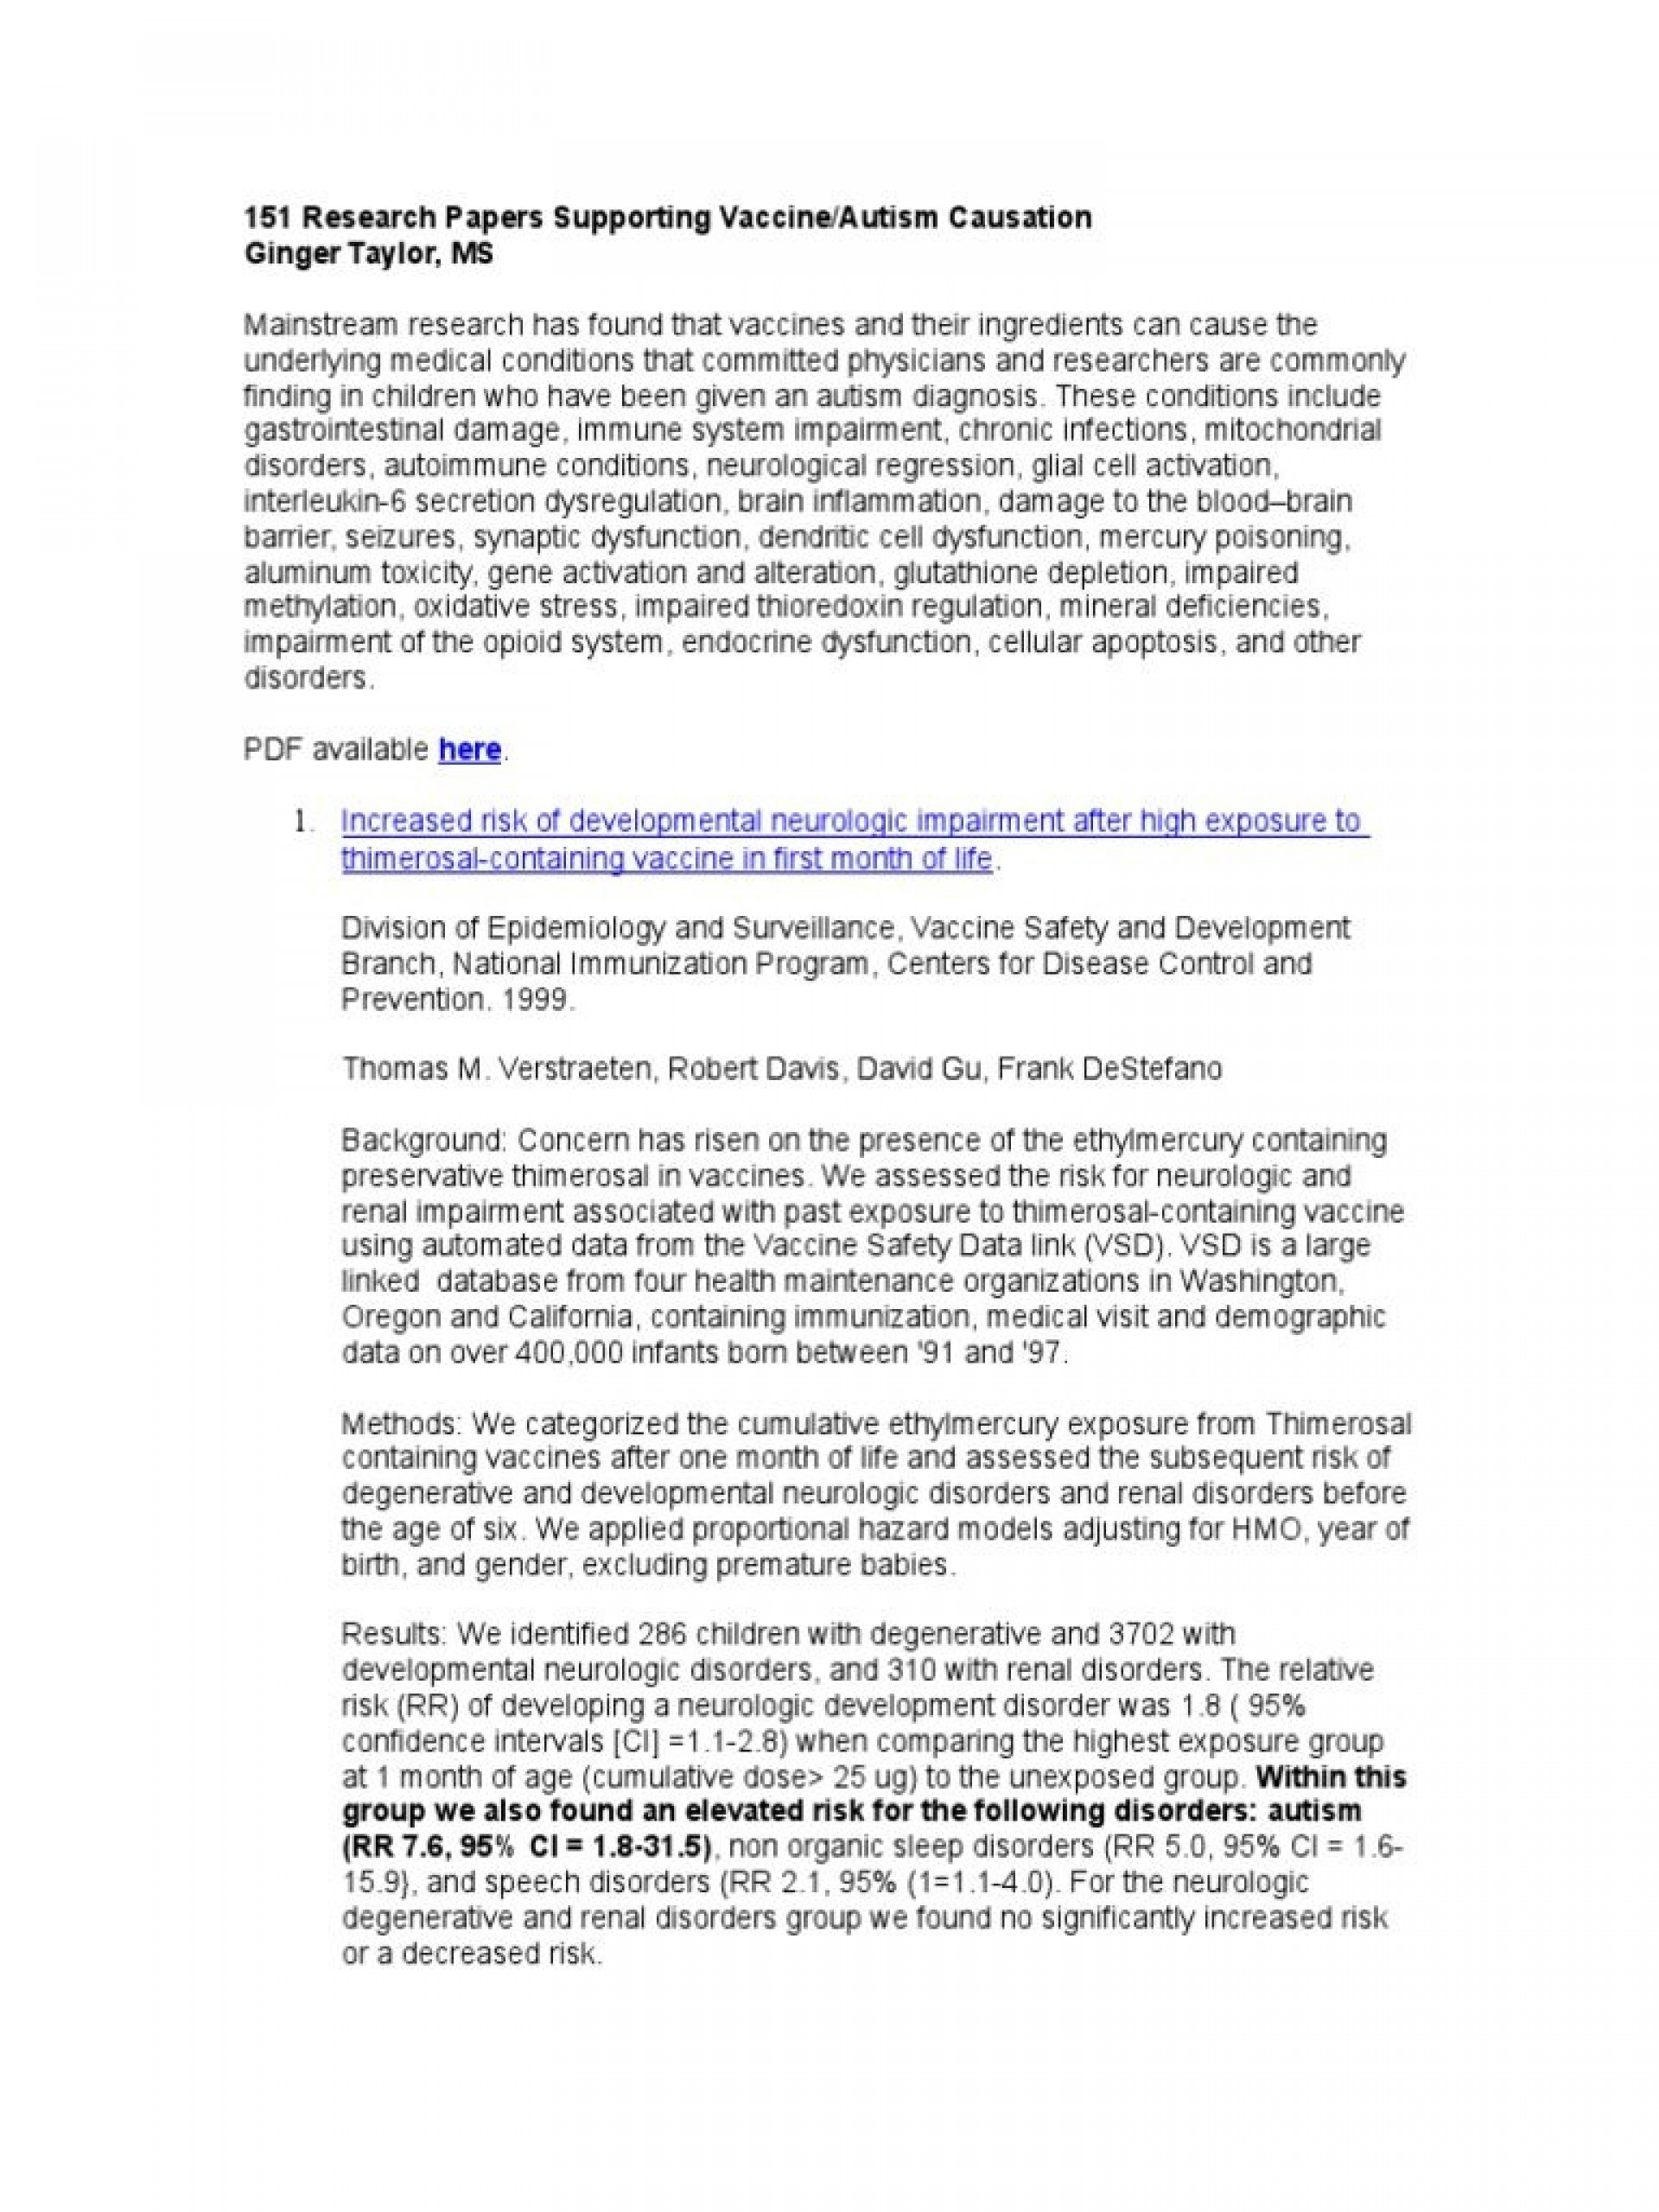 001 Vaccines Research Paper Sensational Edible Papers Conclusion Outline 1920